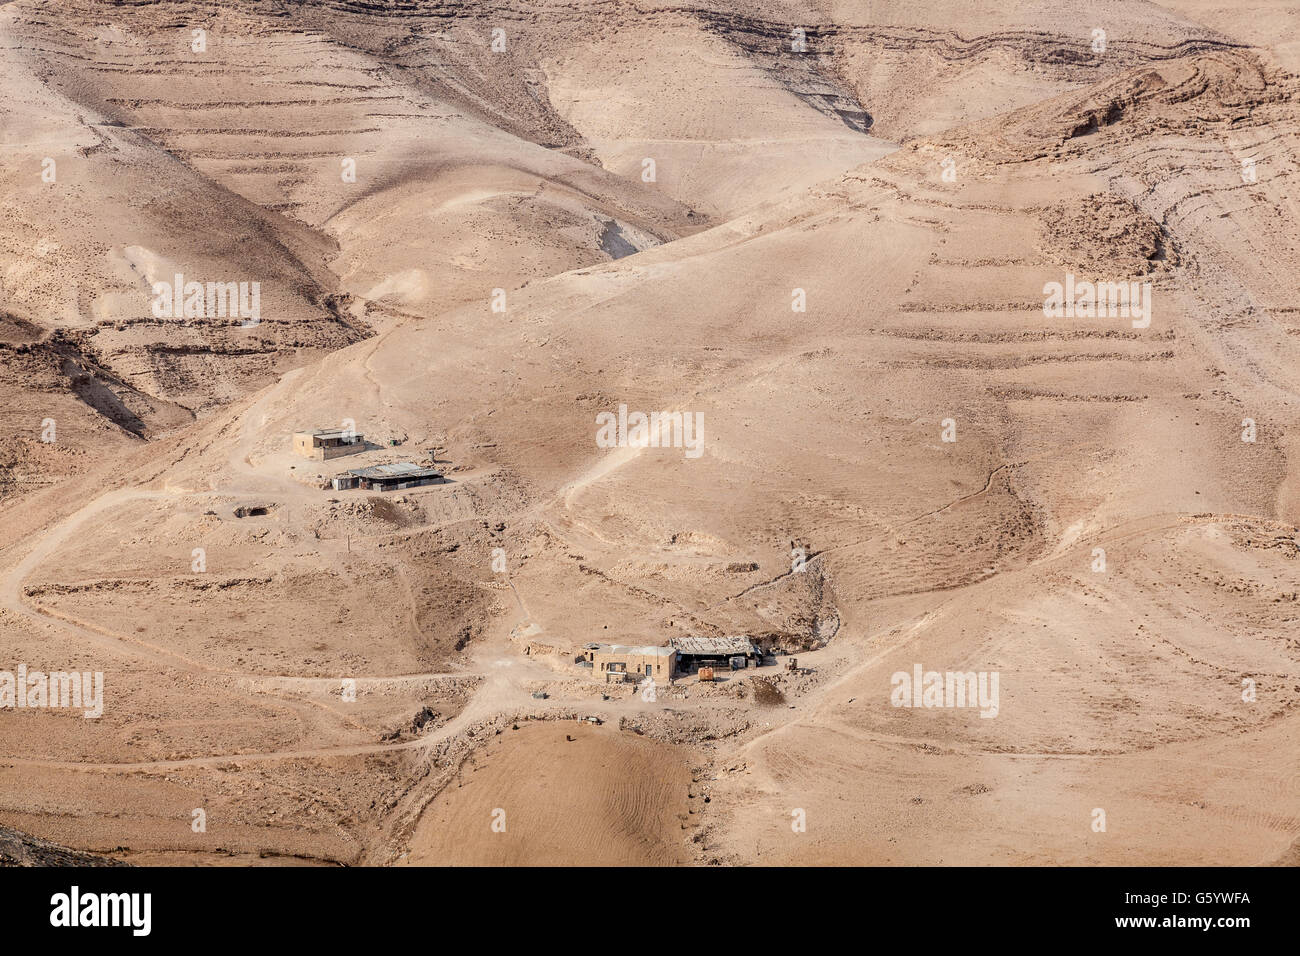 Judean desert east from Jerusalem and west from Dead Sea with Kidron Valley and Mar Saba Monastery in Palestine Stock Photo